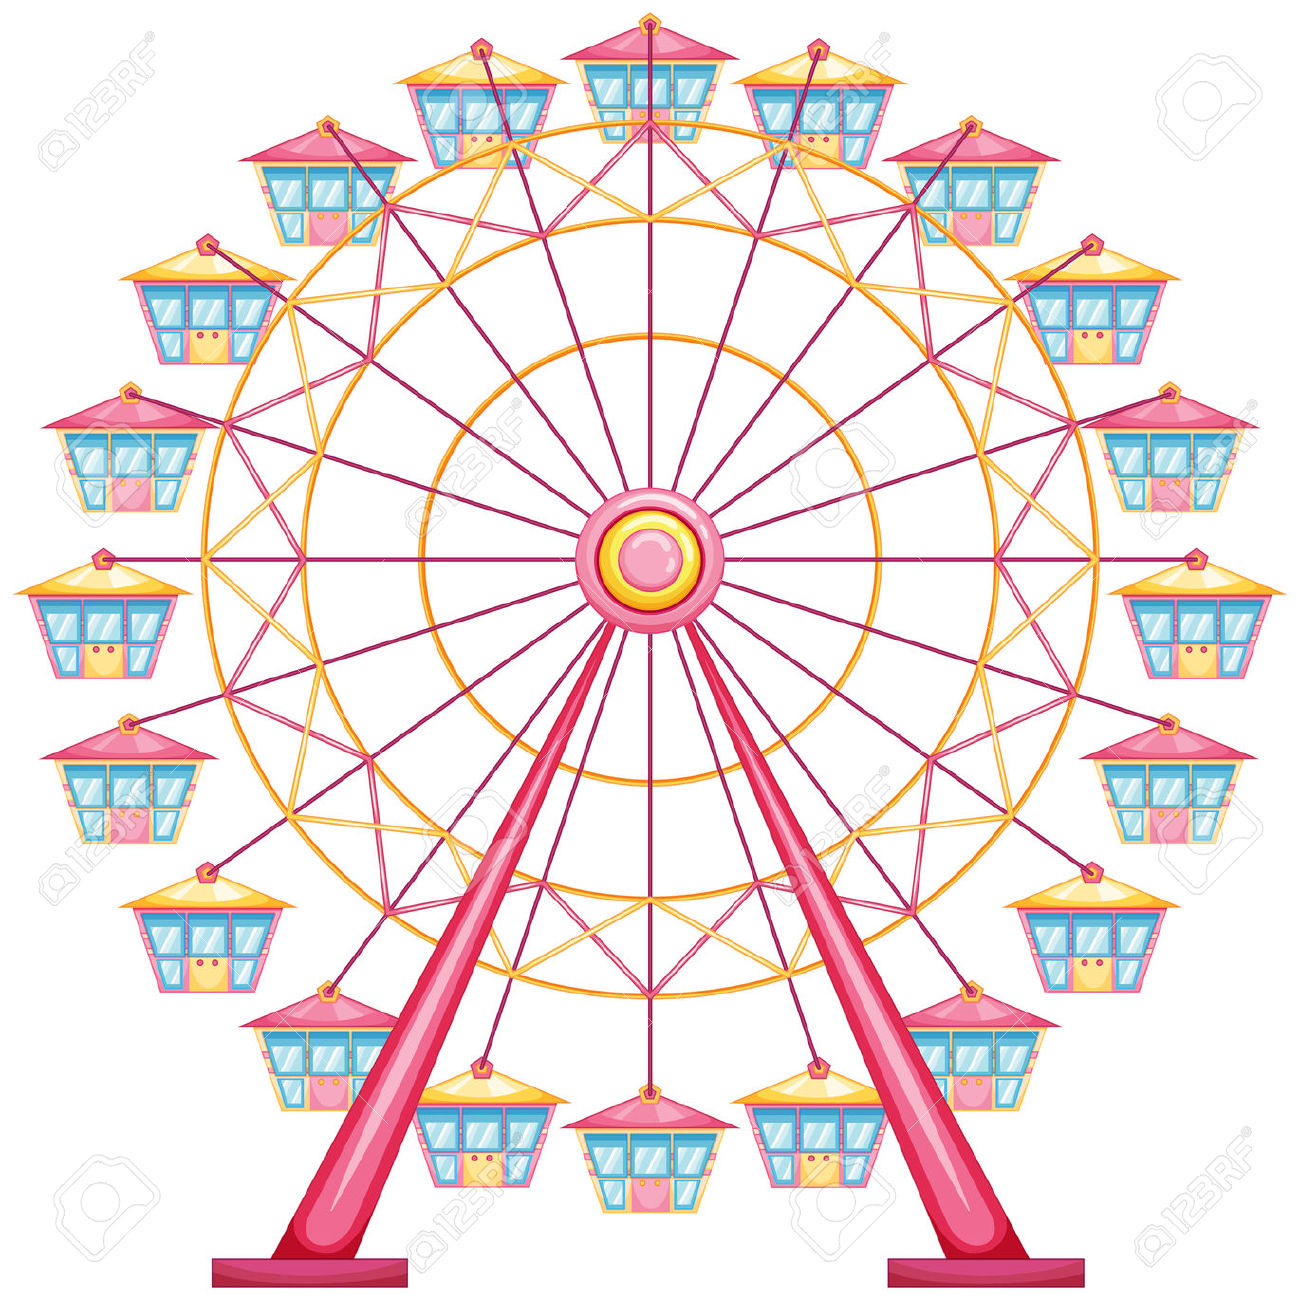 image transparent library Ferris clipart. Wheel station